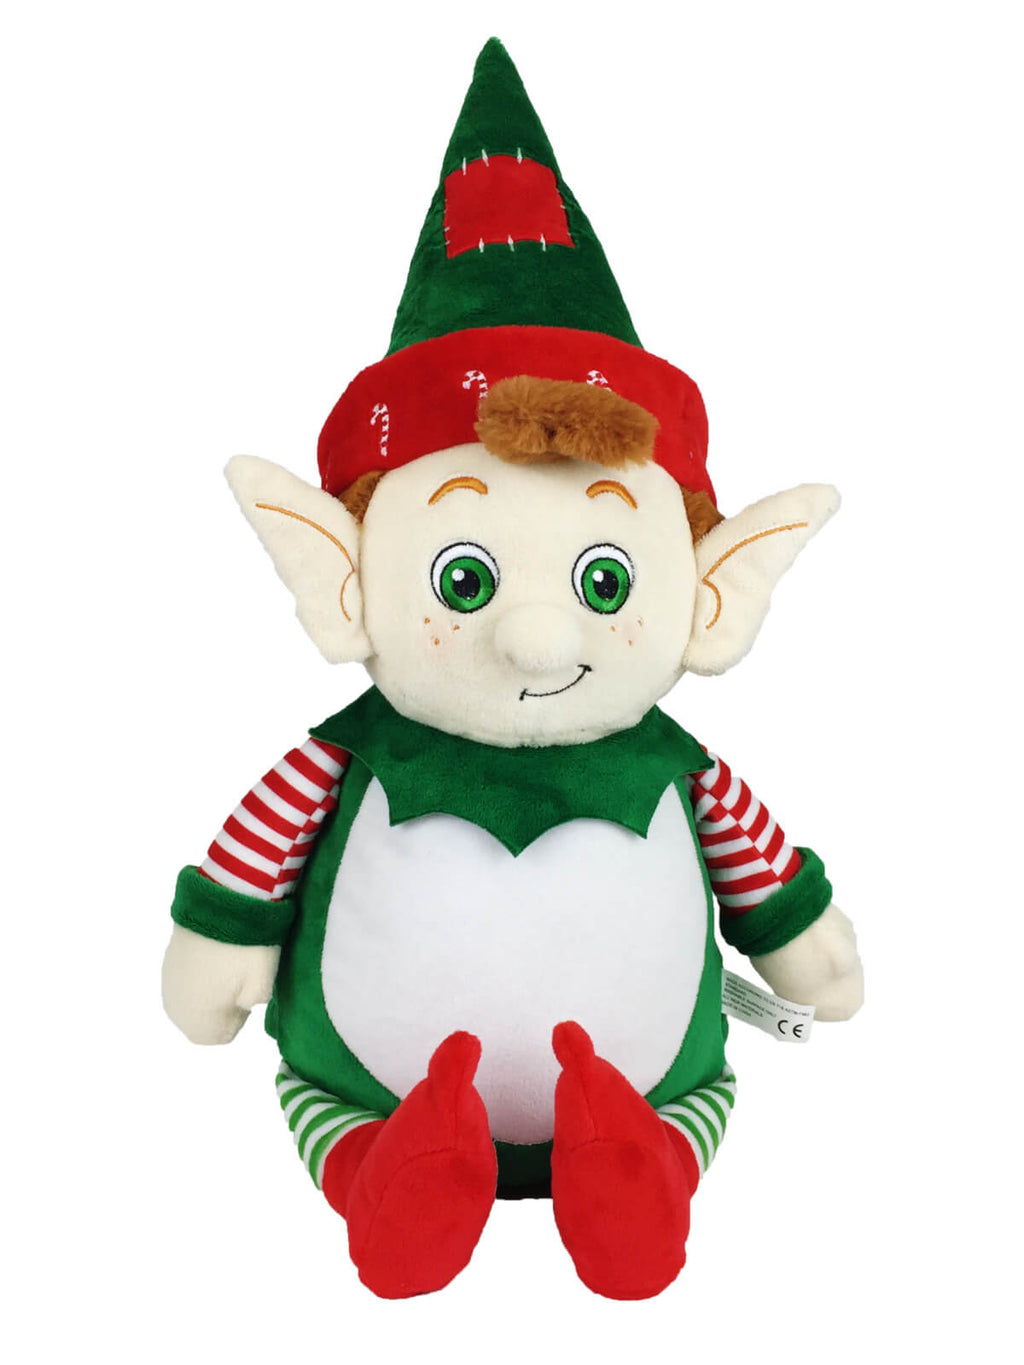 Personalised Teddy - Christmas Elf - D'lighted